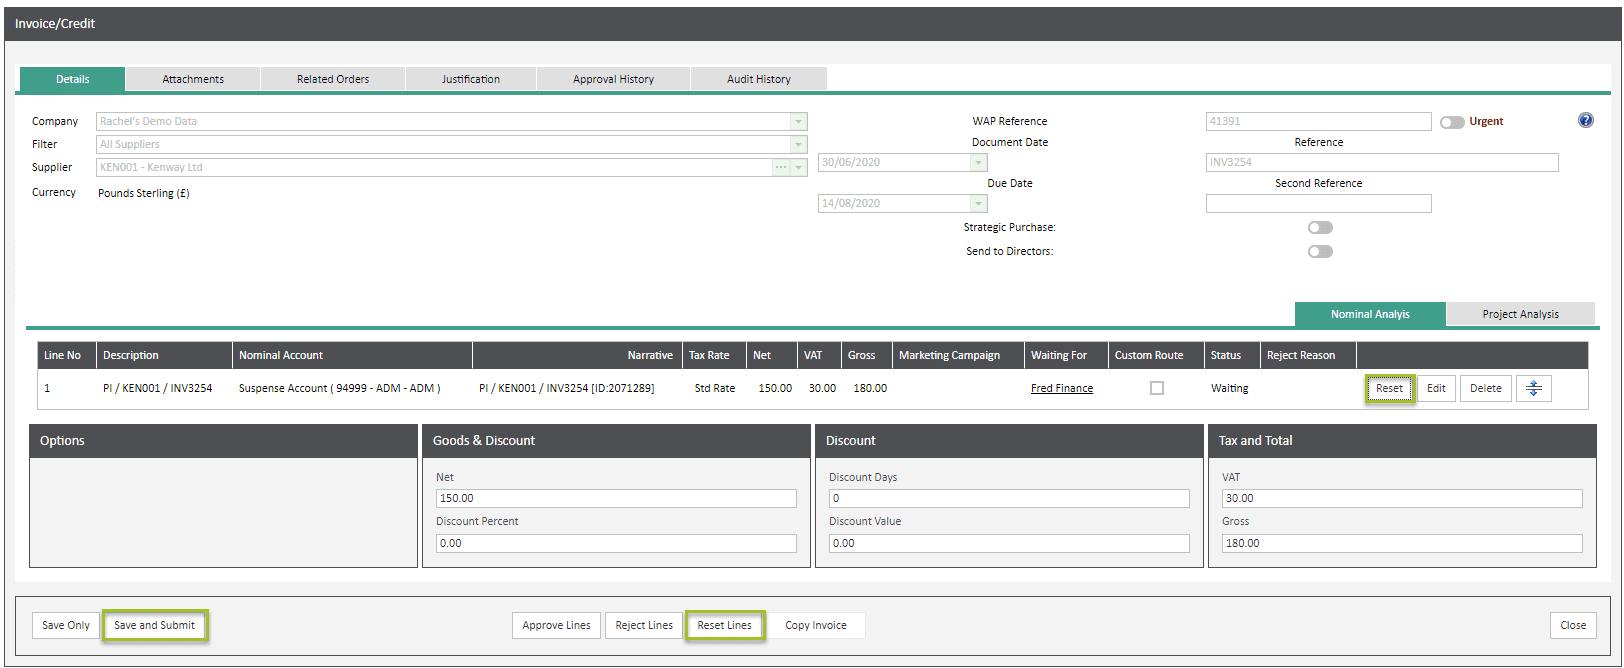 Sicon WAP Invoice Help and User Guide - Invoice HUG Section 6.1 Image 3